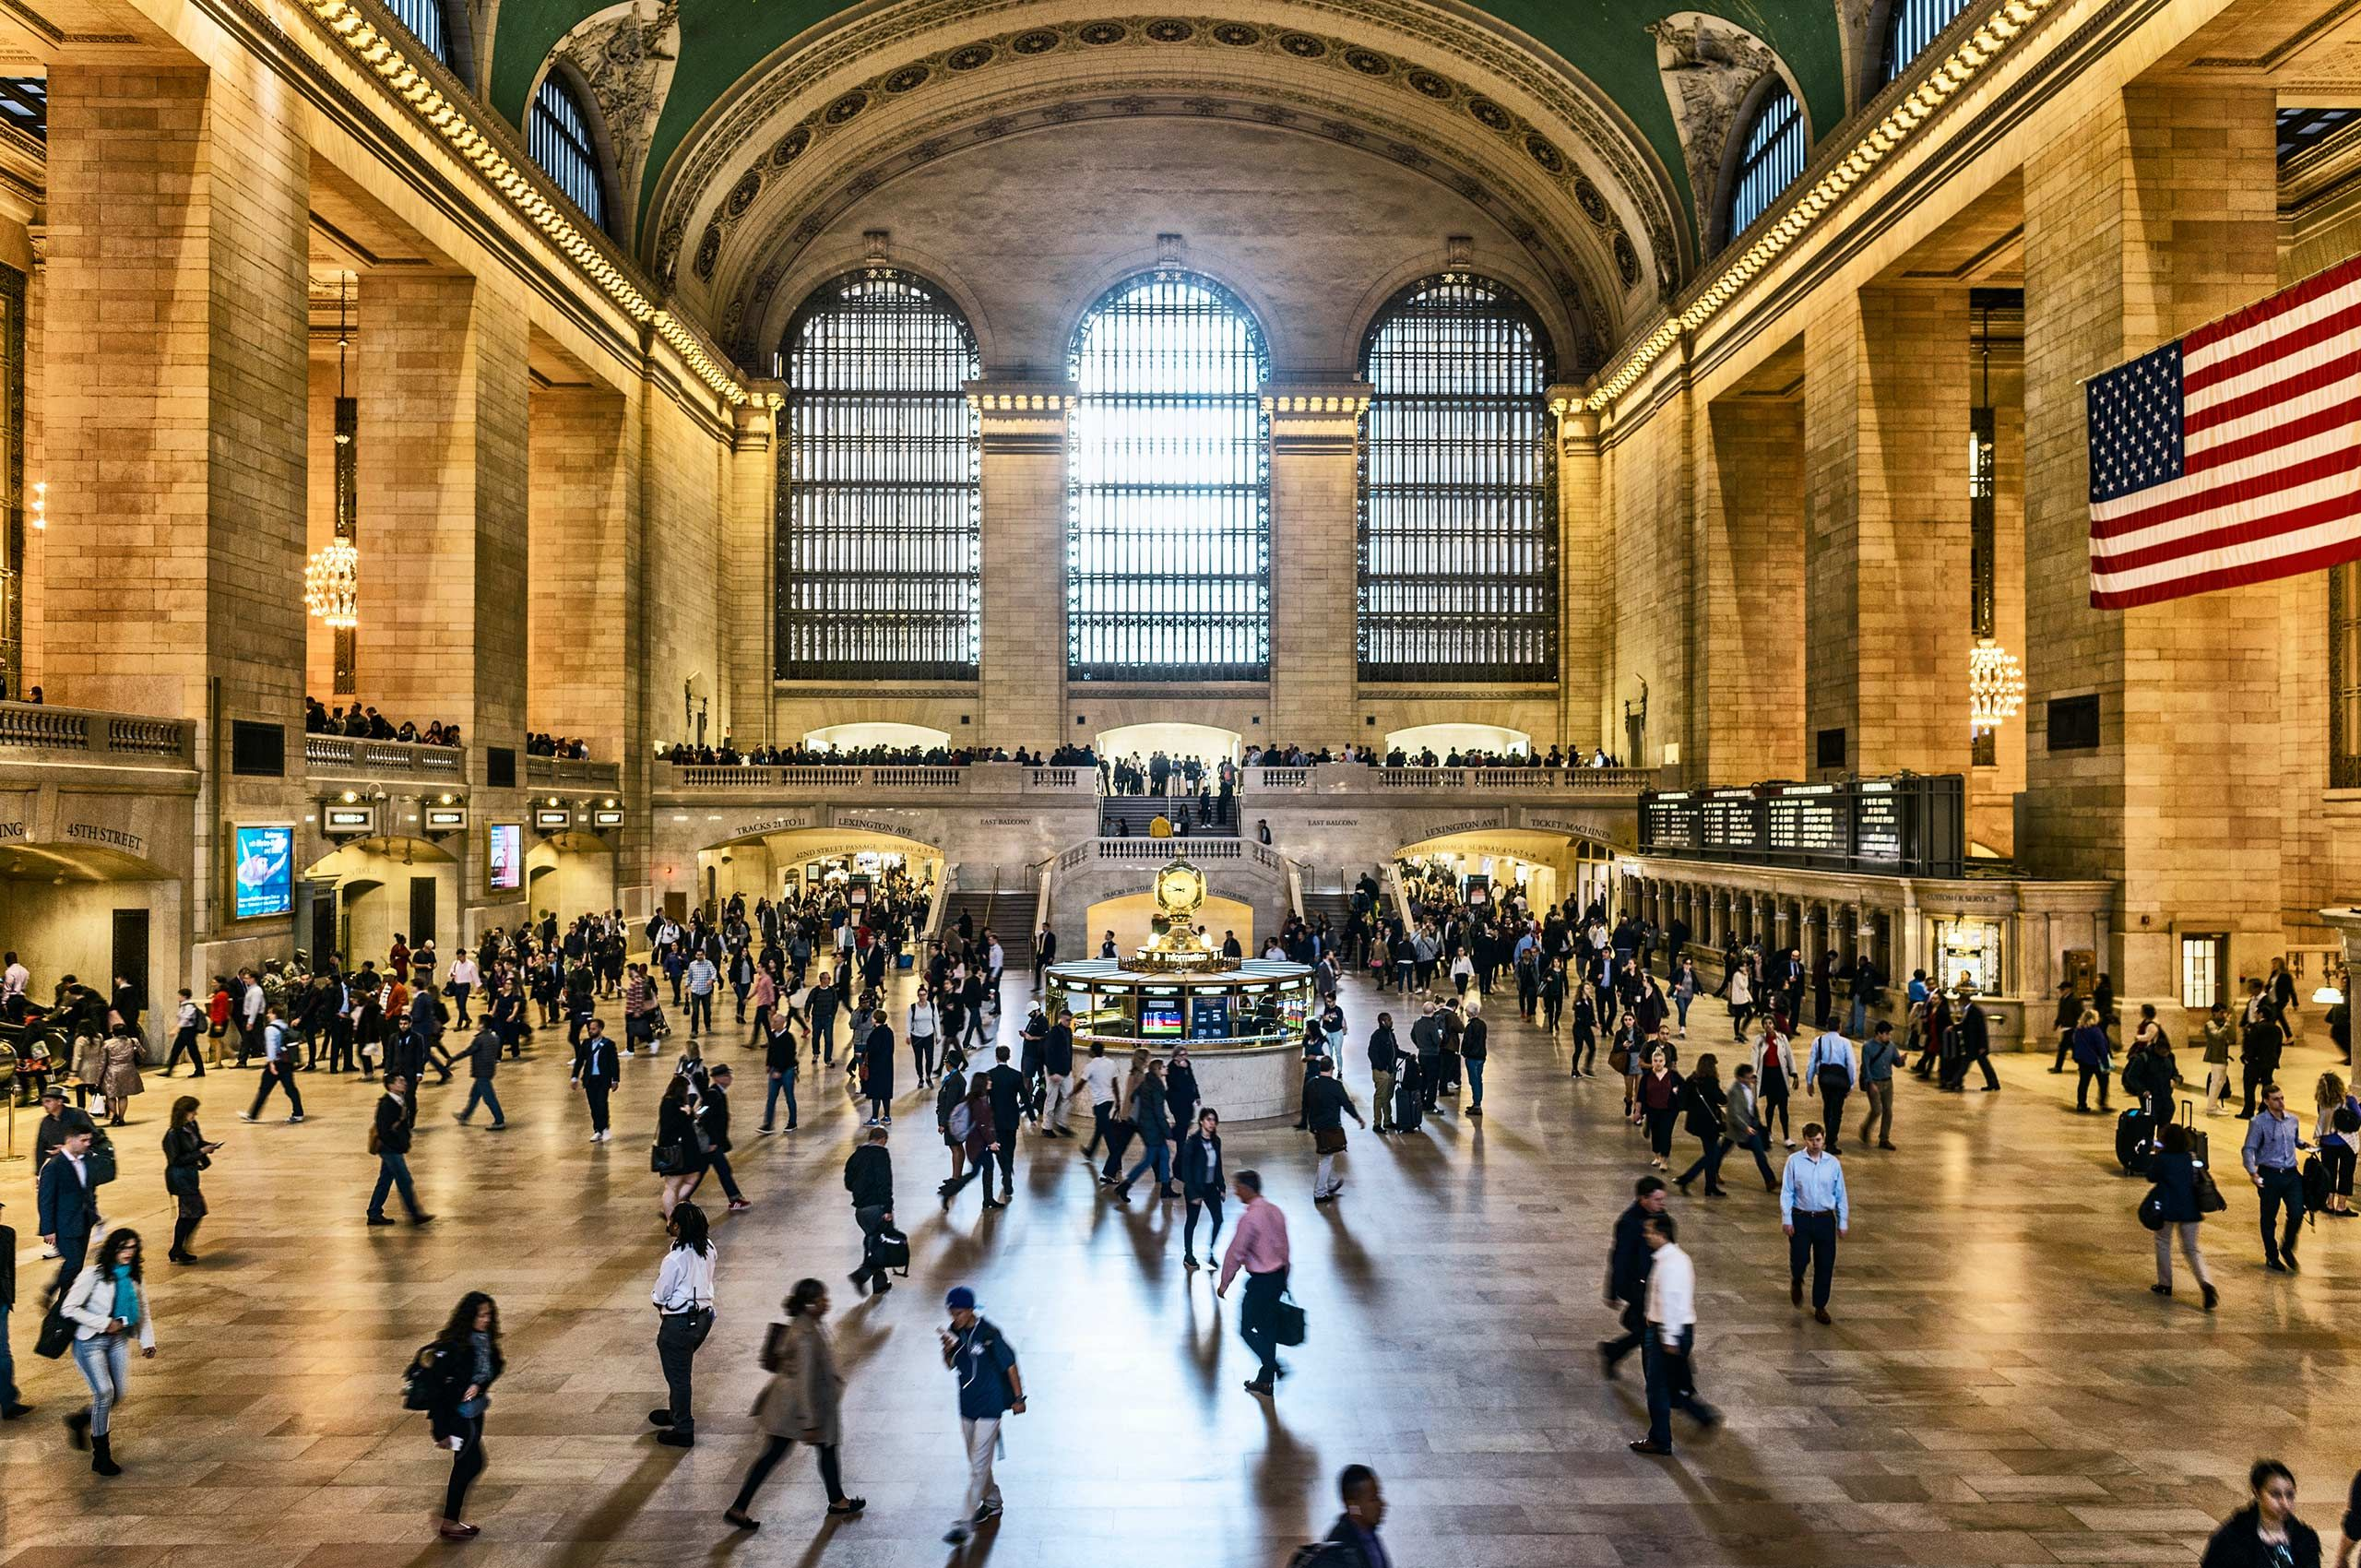 grand-central-station-HenrikOlundPhotography.jpg